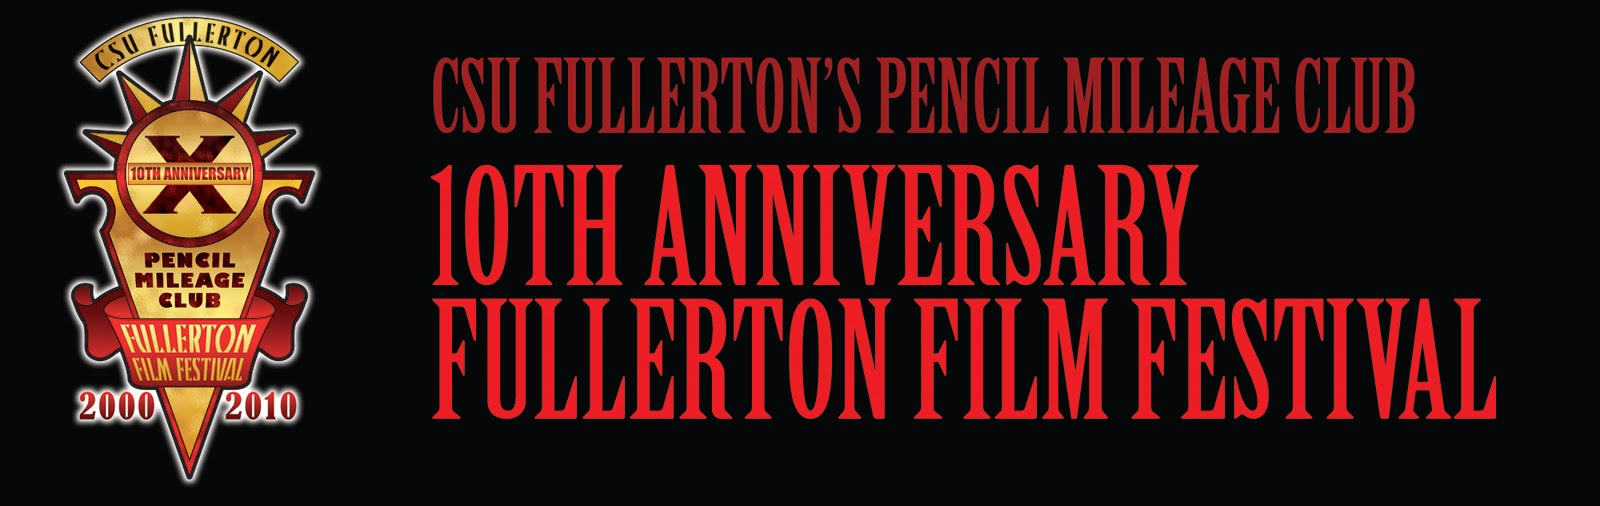 CSUF Pencil Mileage Club Film Festival